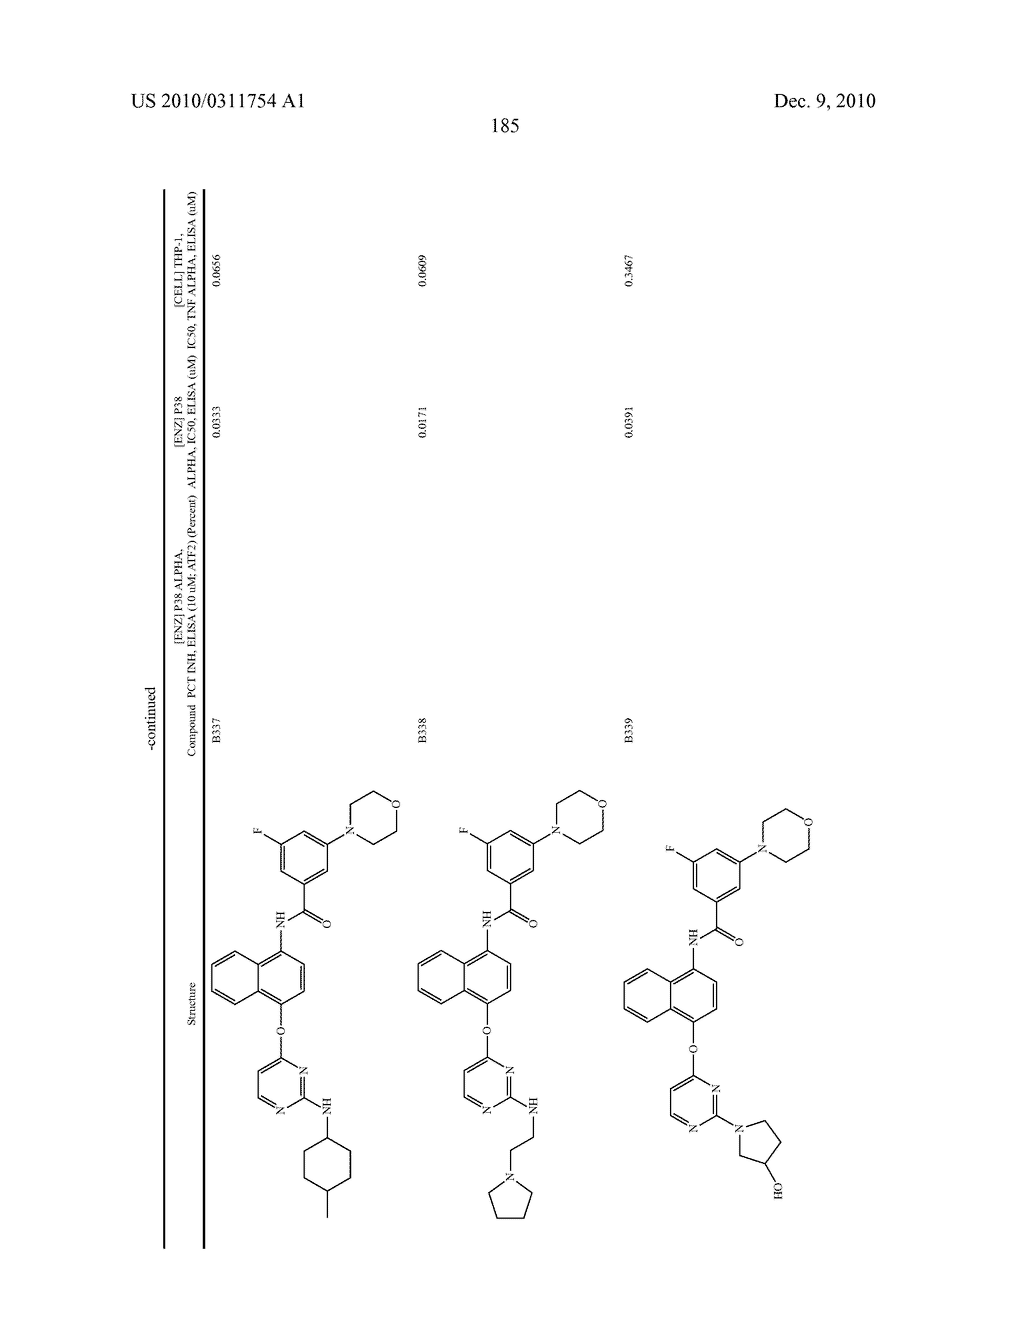 1,4-Disubstituted Naphthalenes as Inhibitors of P38 Map Kinase - diagram, schematic, and image 186